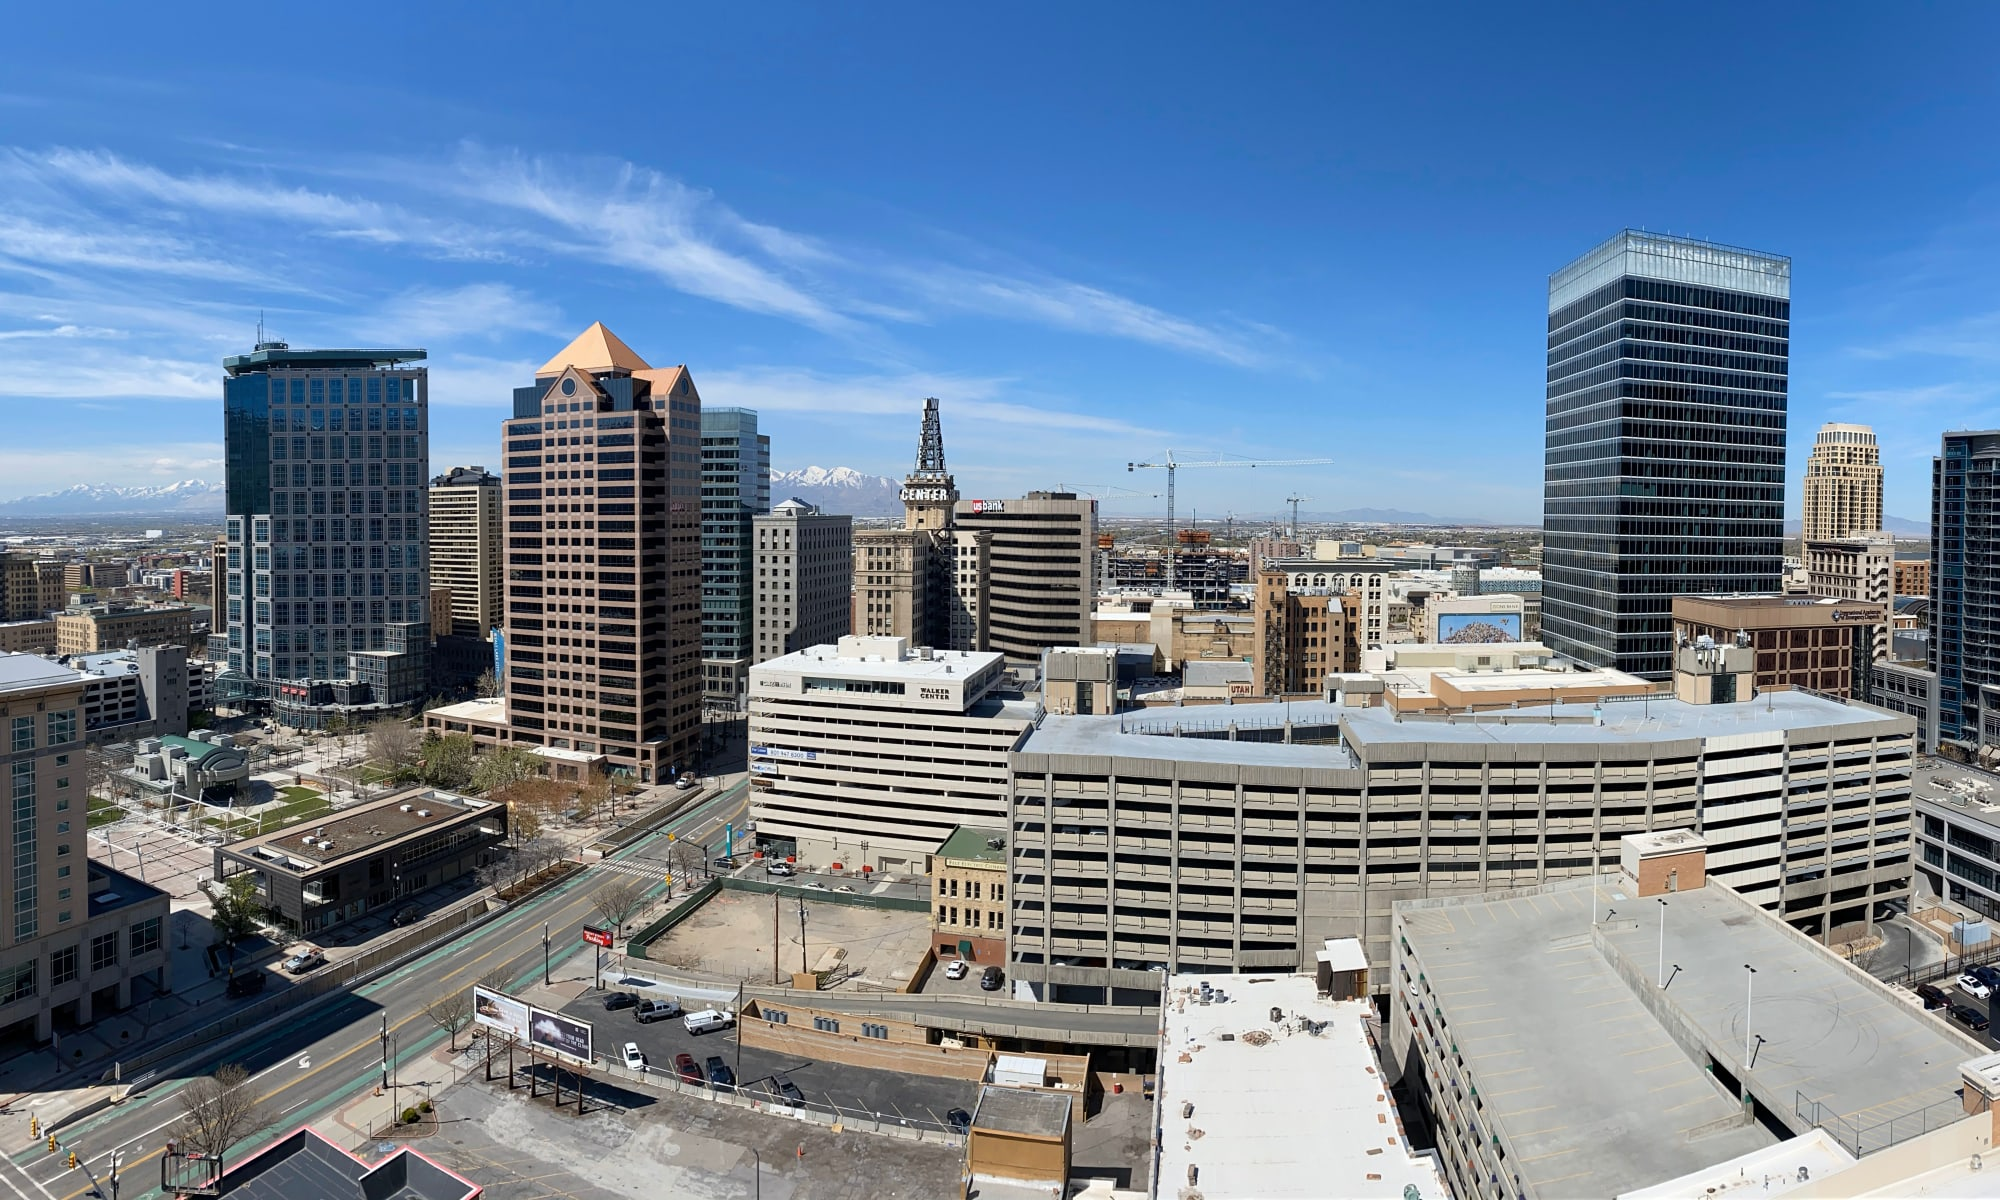 View of the city from the 18th floor of Liberty SKY in Salt Lake City, Utah